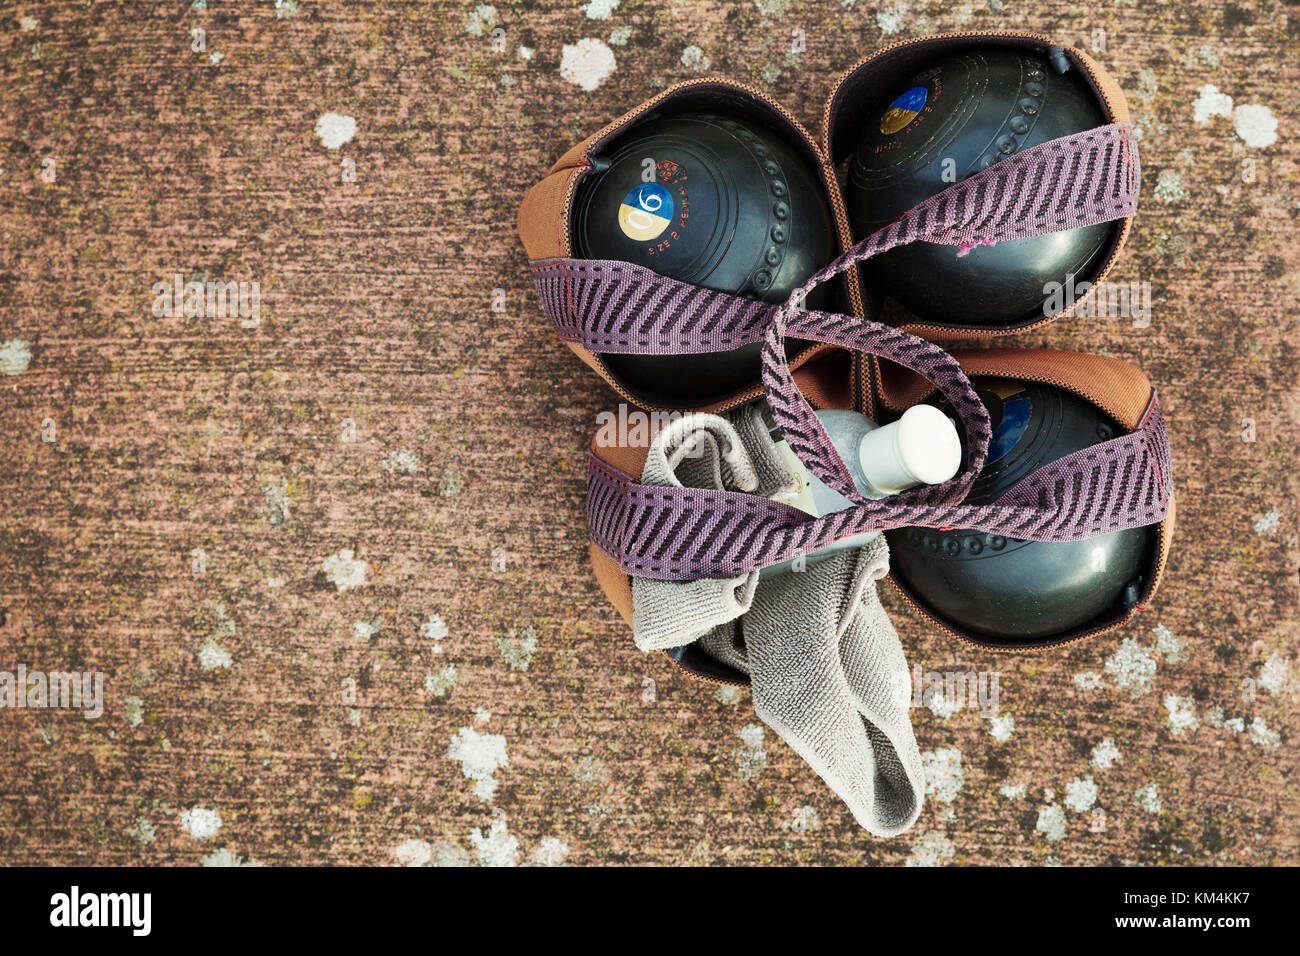 Overhead view of four wooden lawn bowls in a ball carrier with a cloth to clean them. - Stock Image